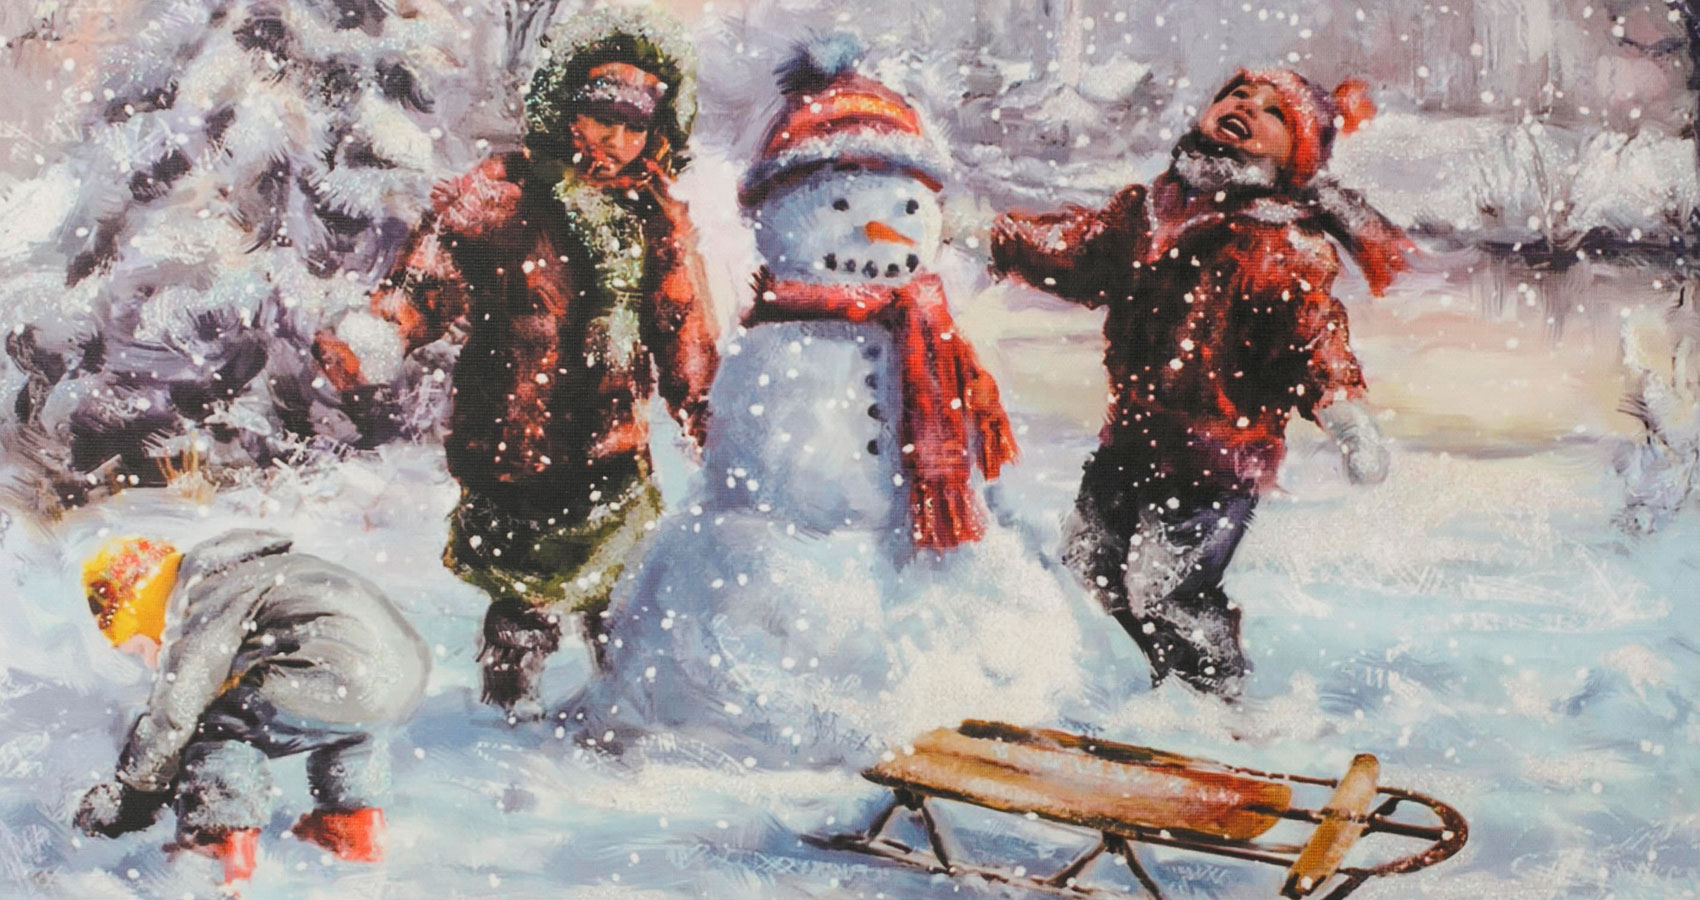 First Snow written by Sherry Howard at Spillwords.com